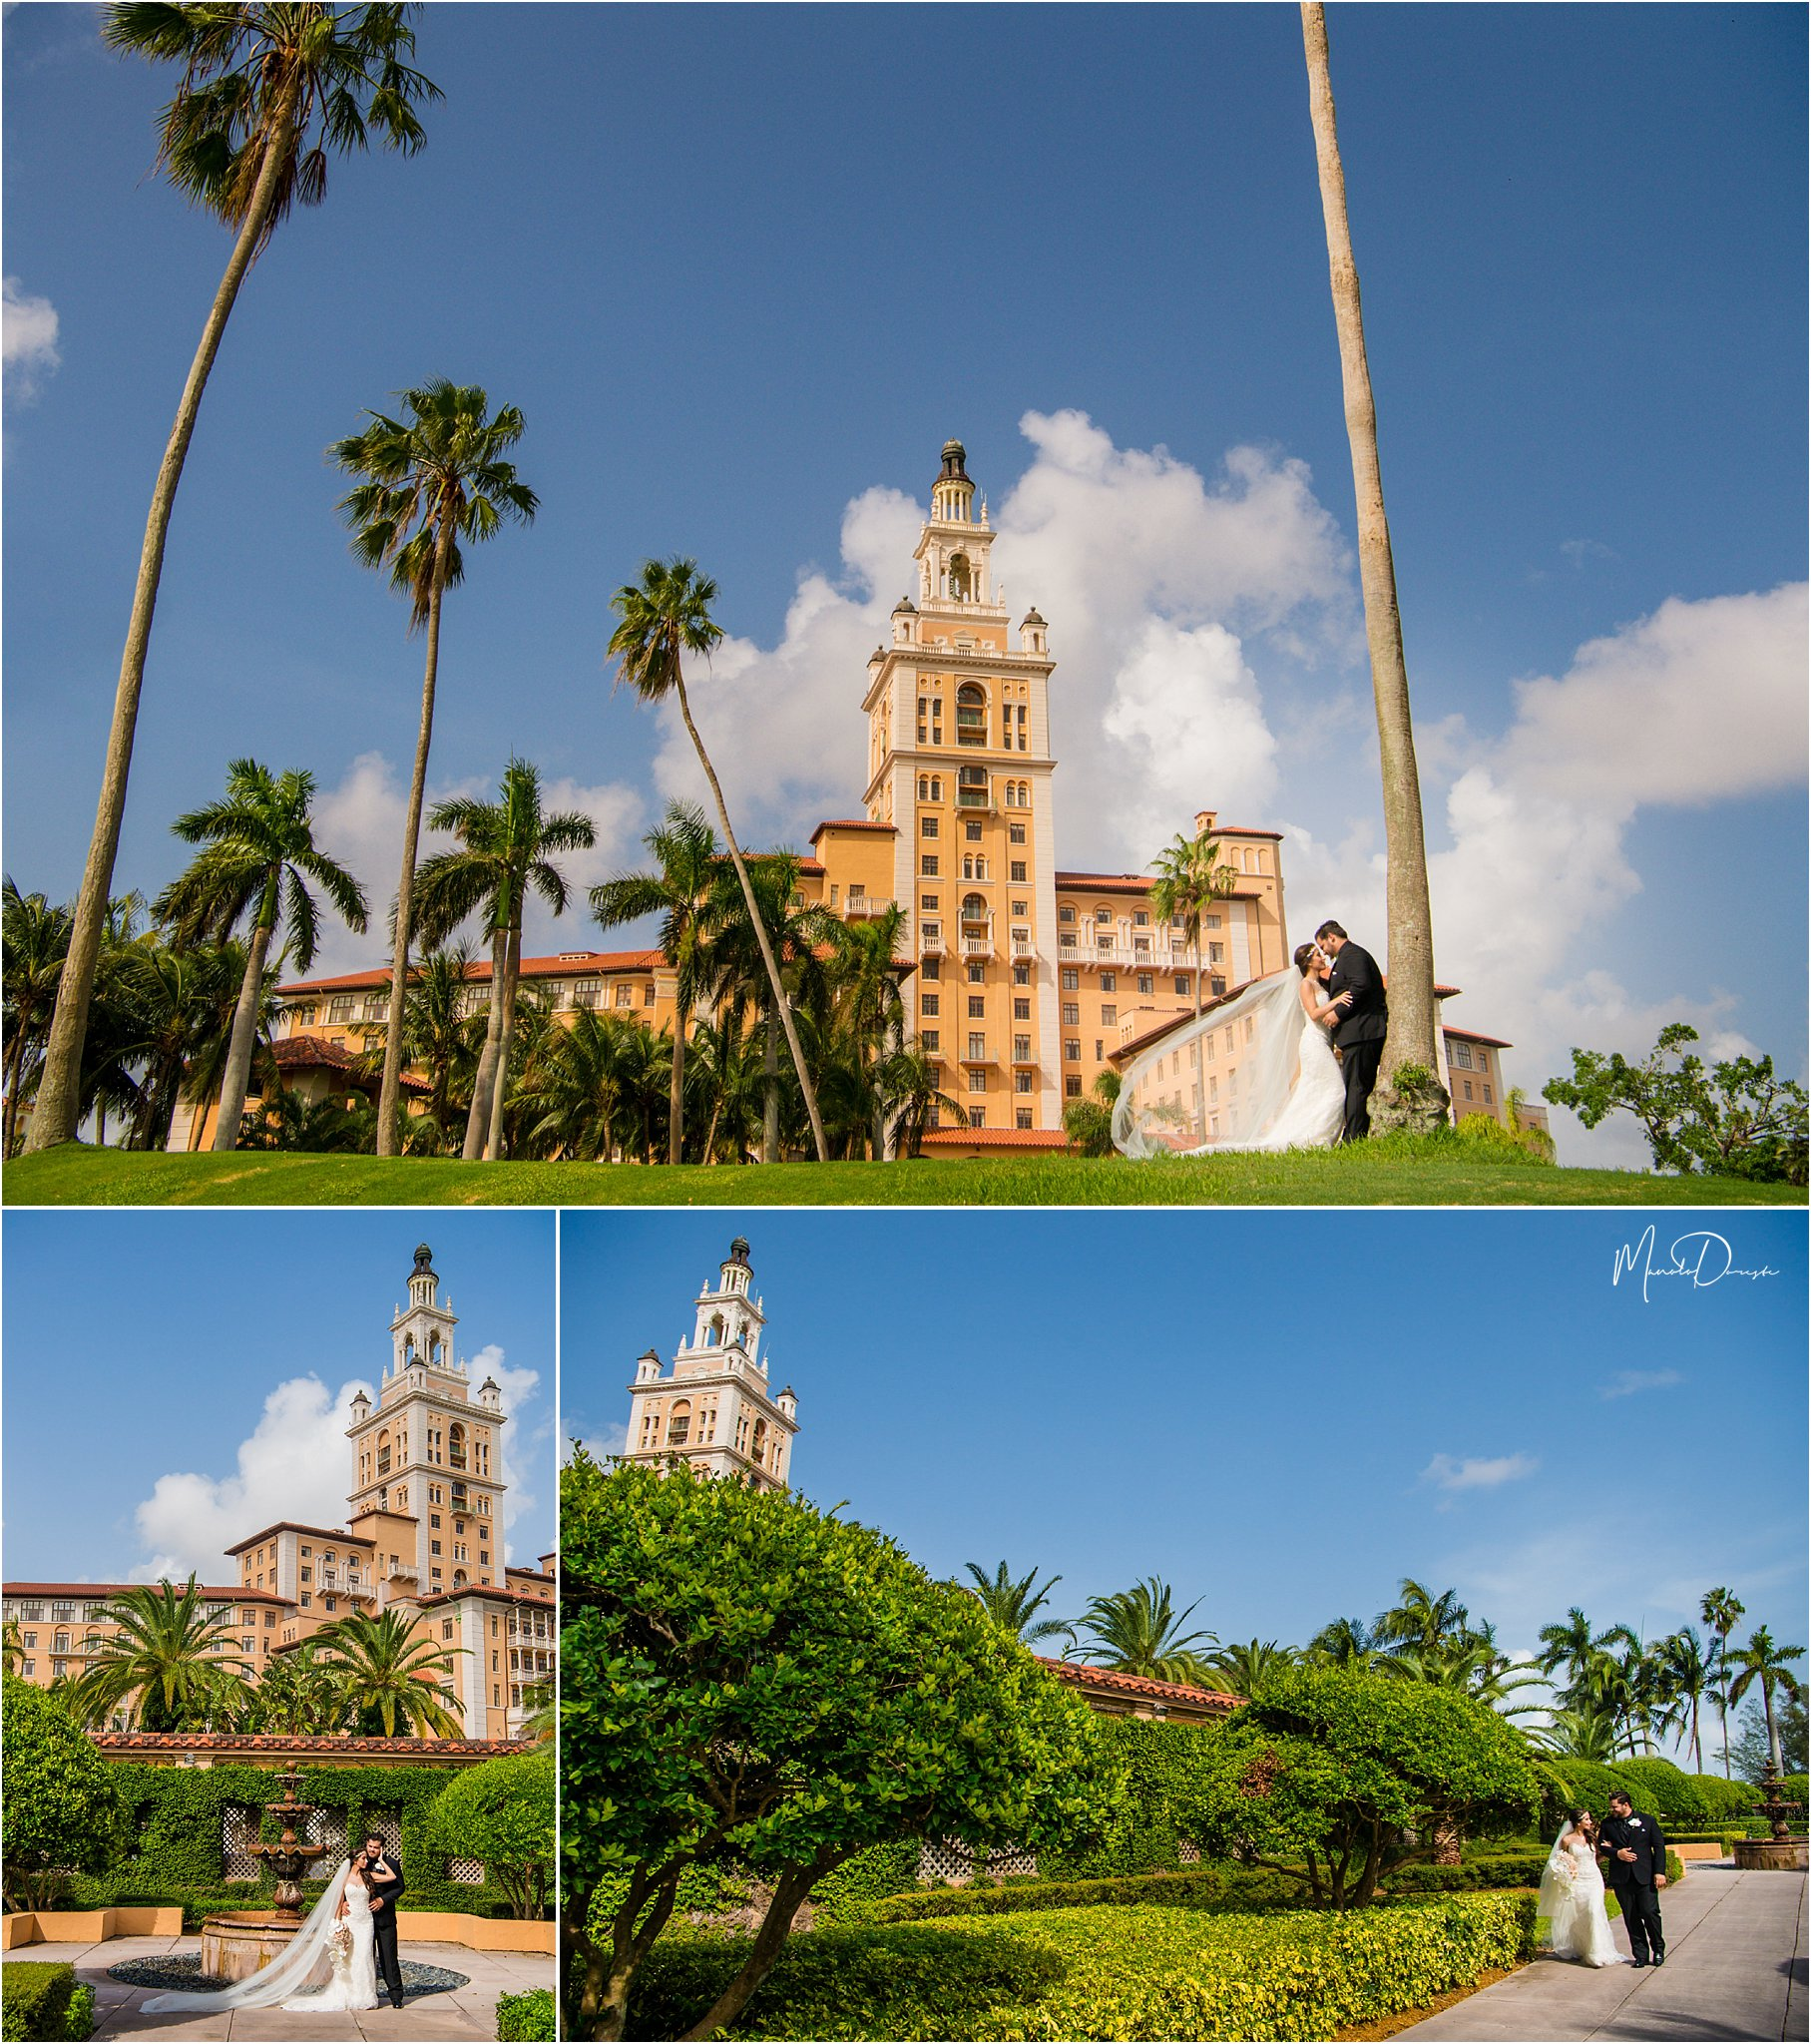 0162_ManoloDoreste_InFocusStudios_Wedding_Family_Photography_Miami_MiamiPhotographer.jpg